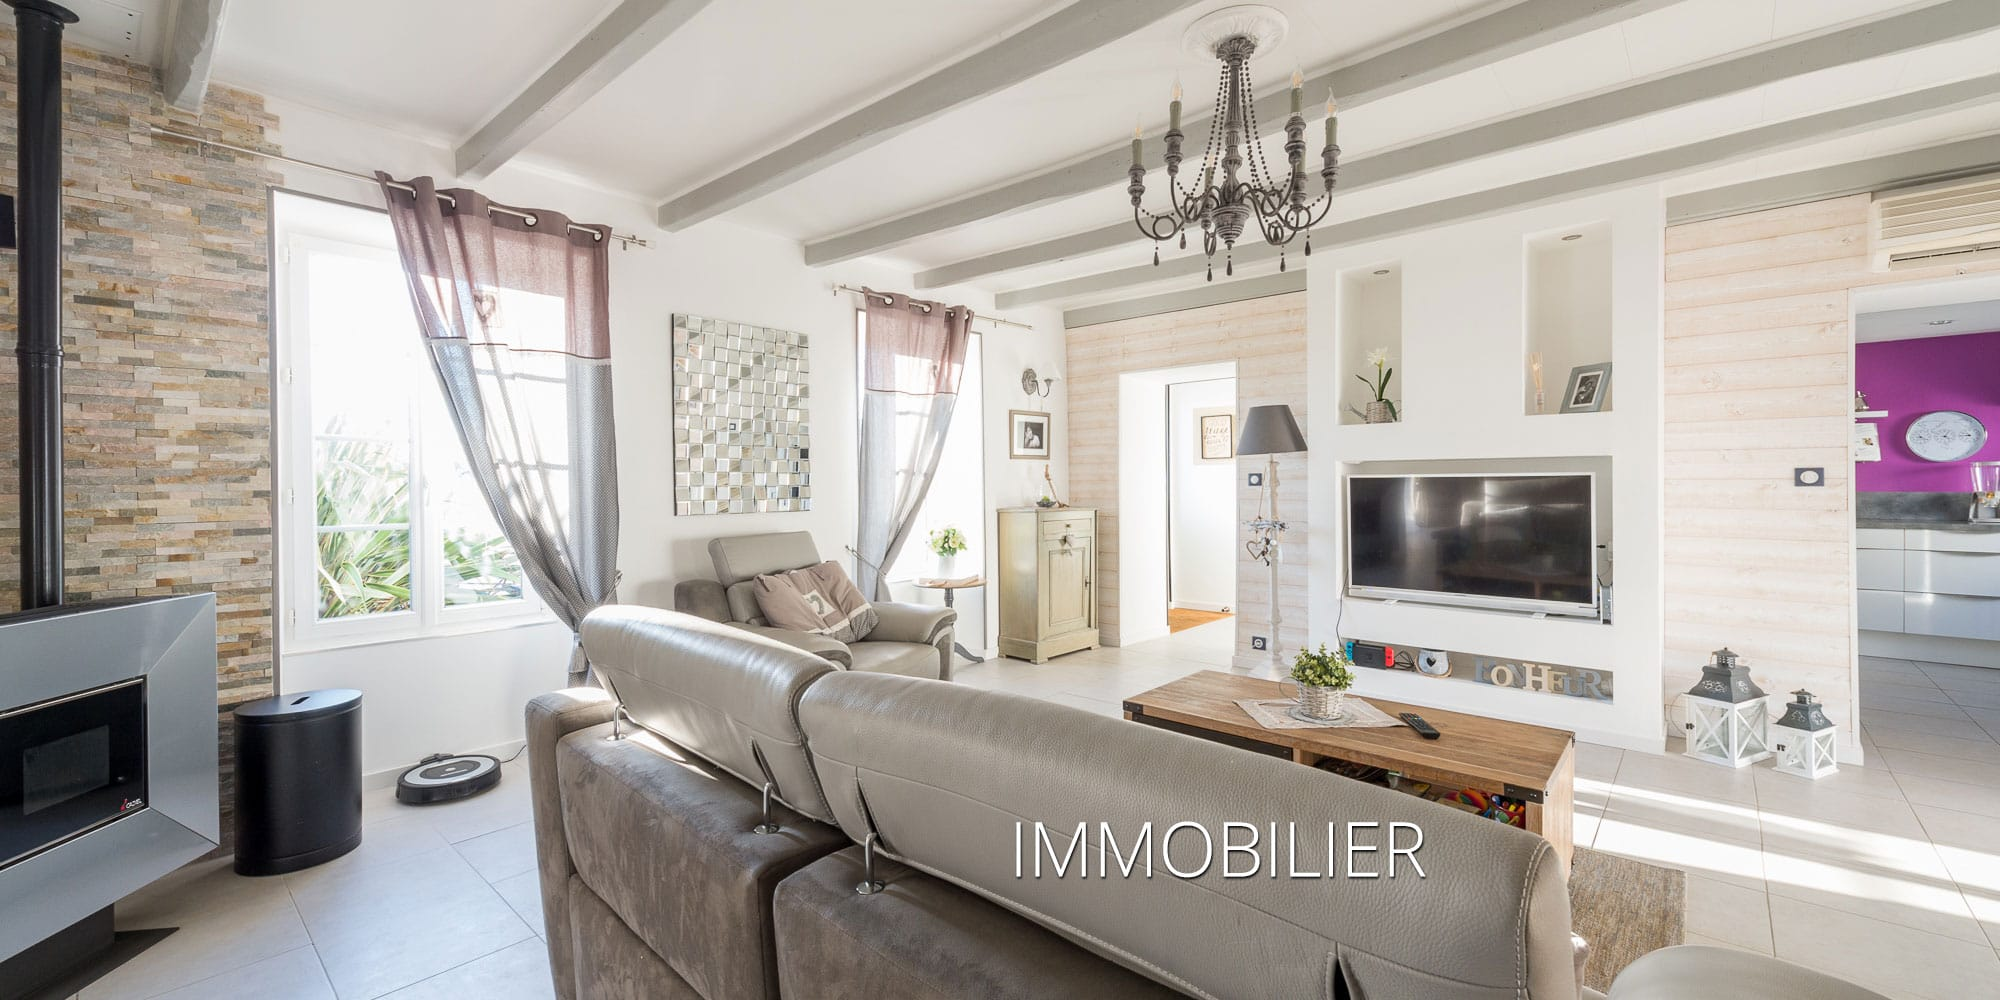 Immobilier-instants-cliches-photographe-17